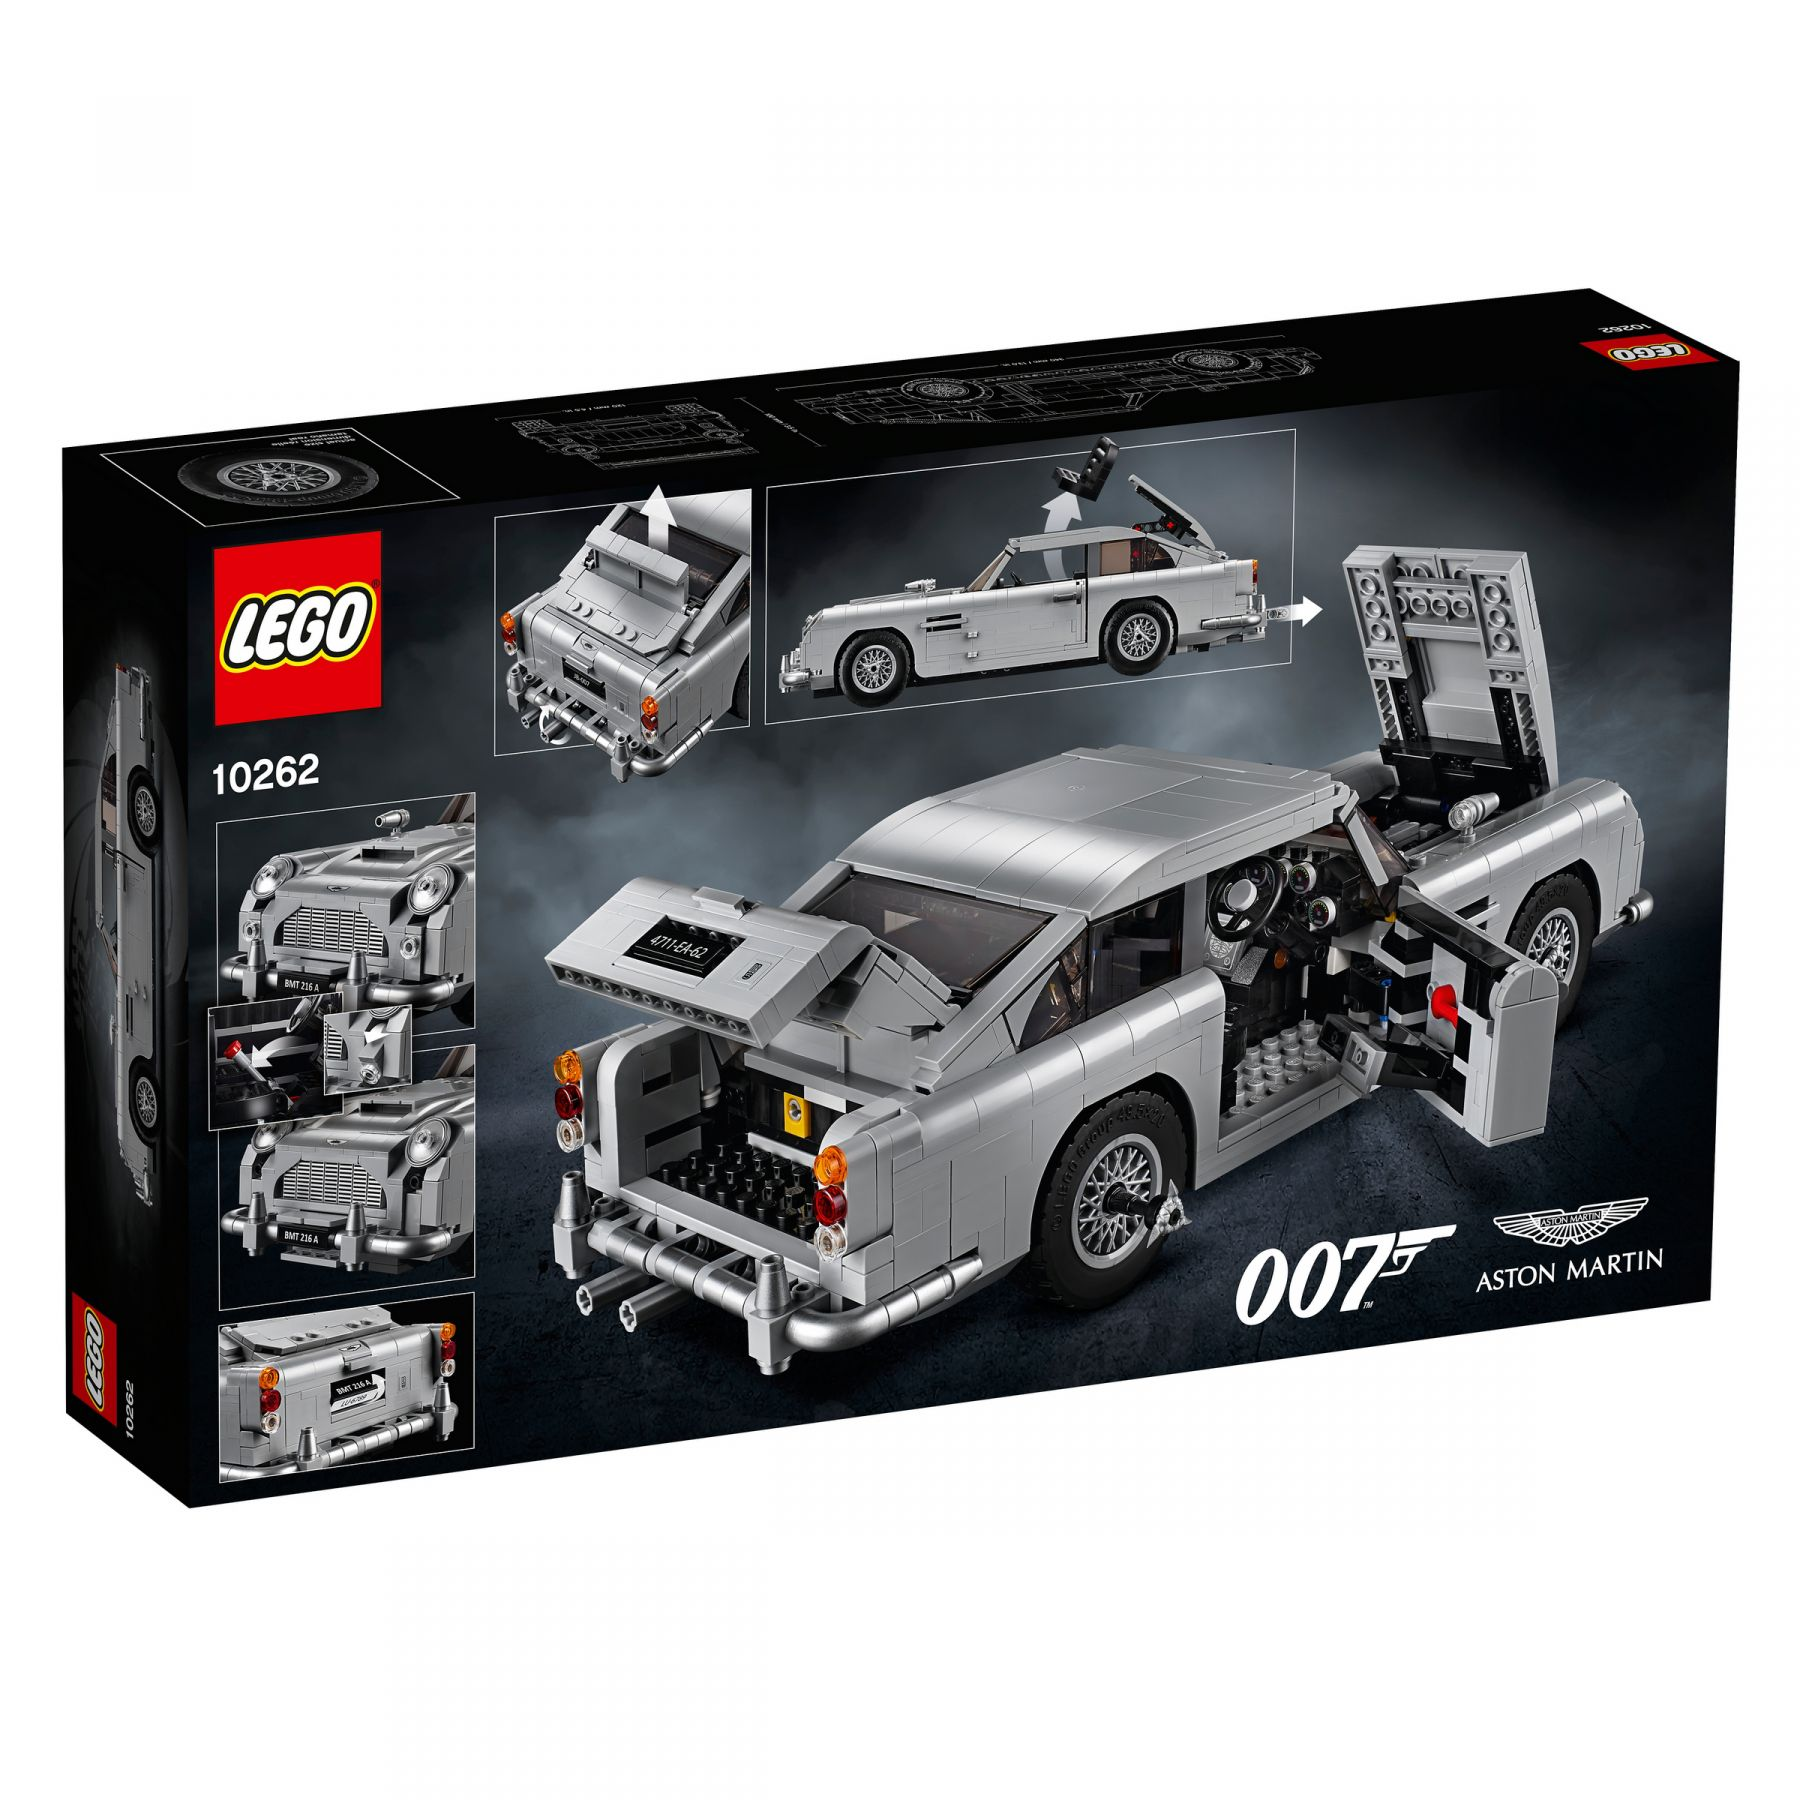 LEGO Advanced Models 10262 James Bond Aston Martin DB5 LEGO_10262_alt5.jpg